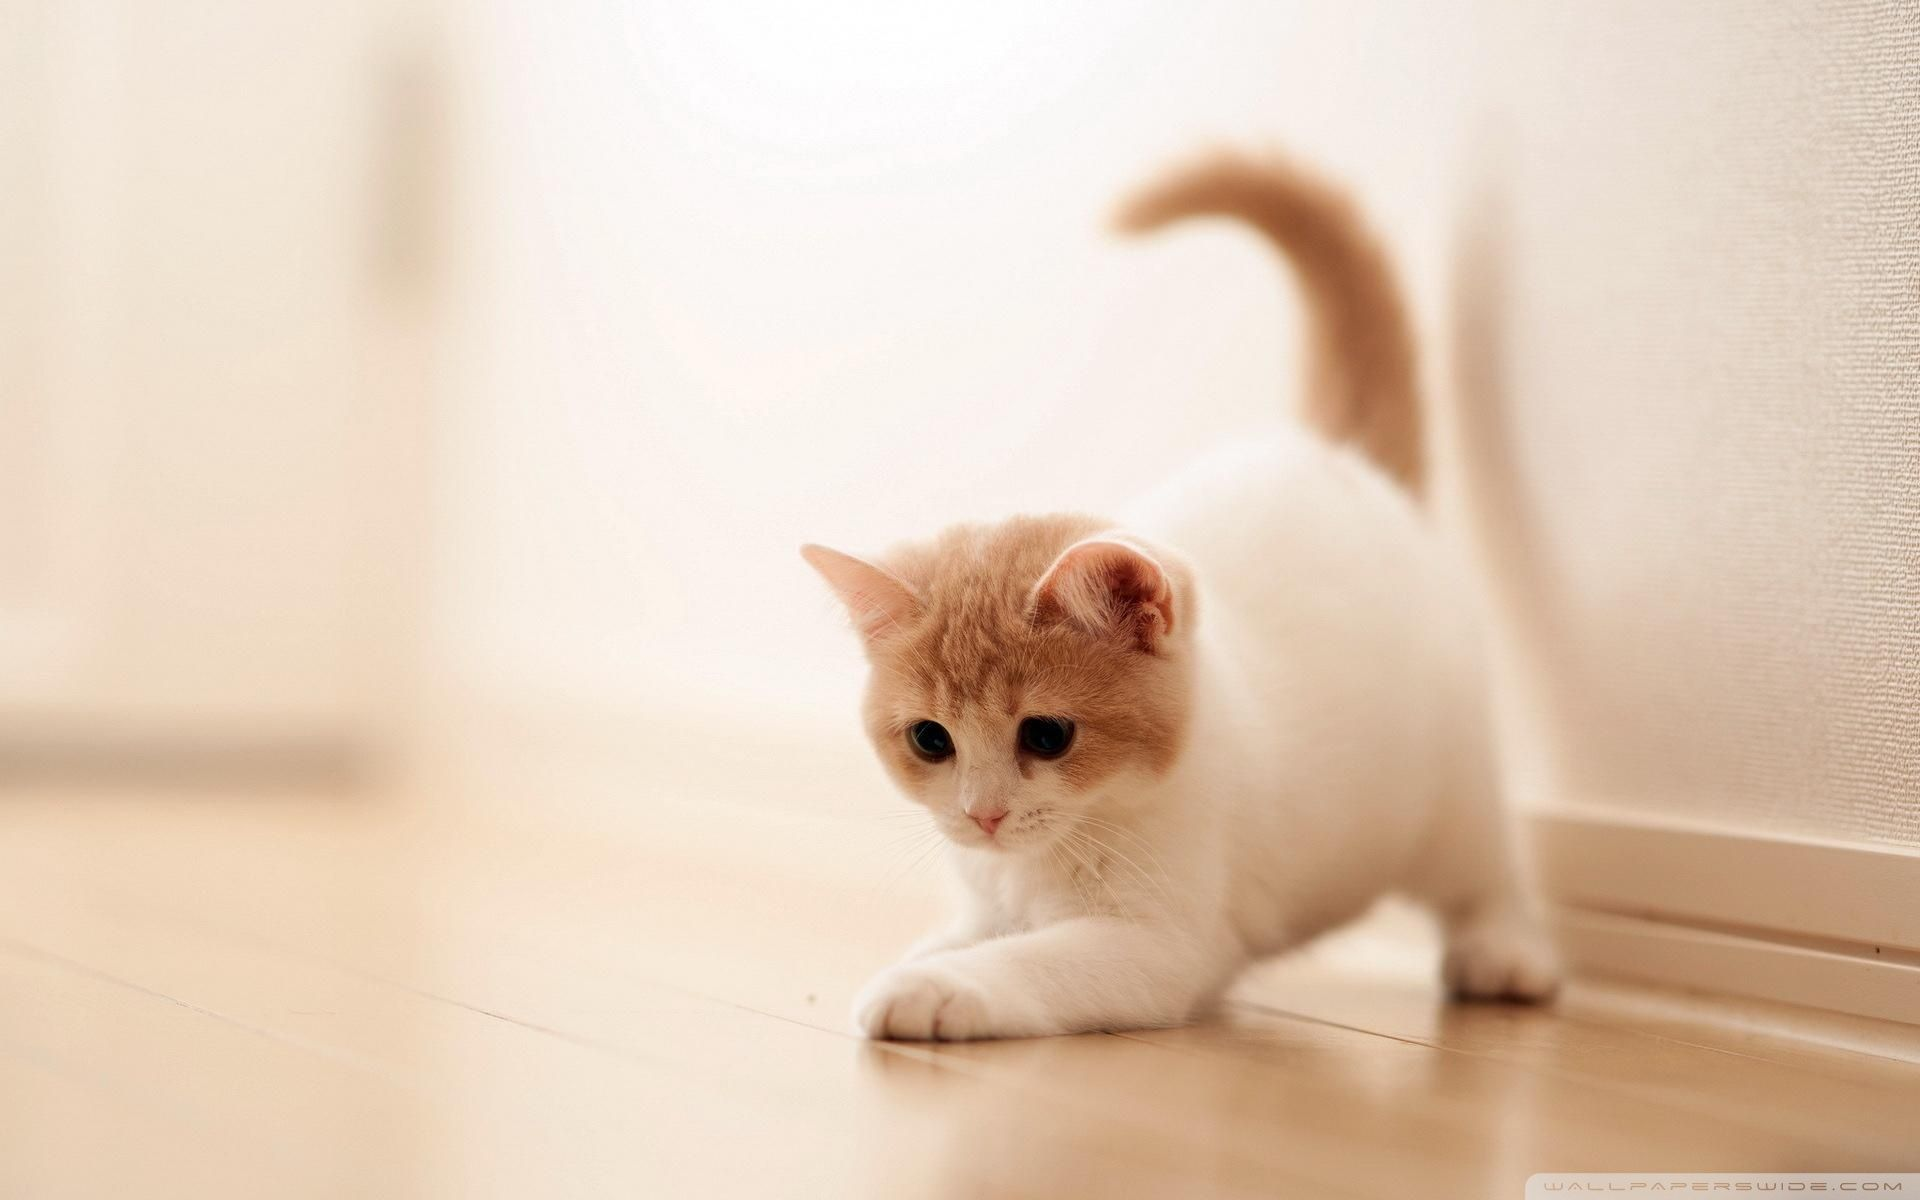 20 Super Adorable Cat Pictures That Will Make You Happy 607071036